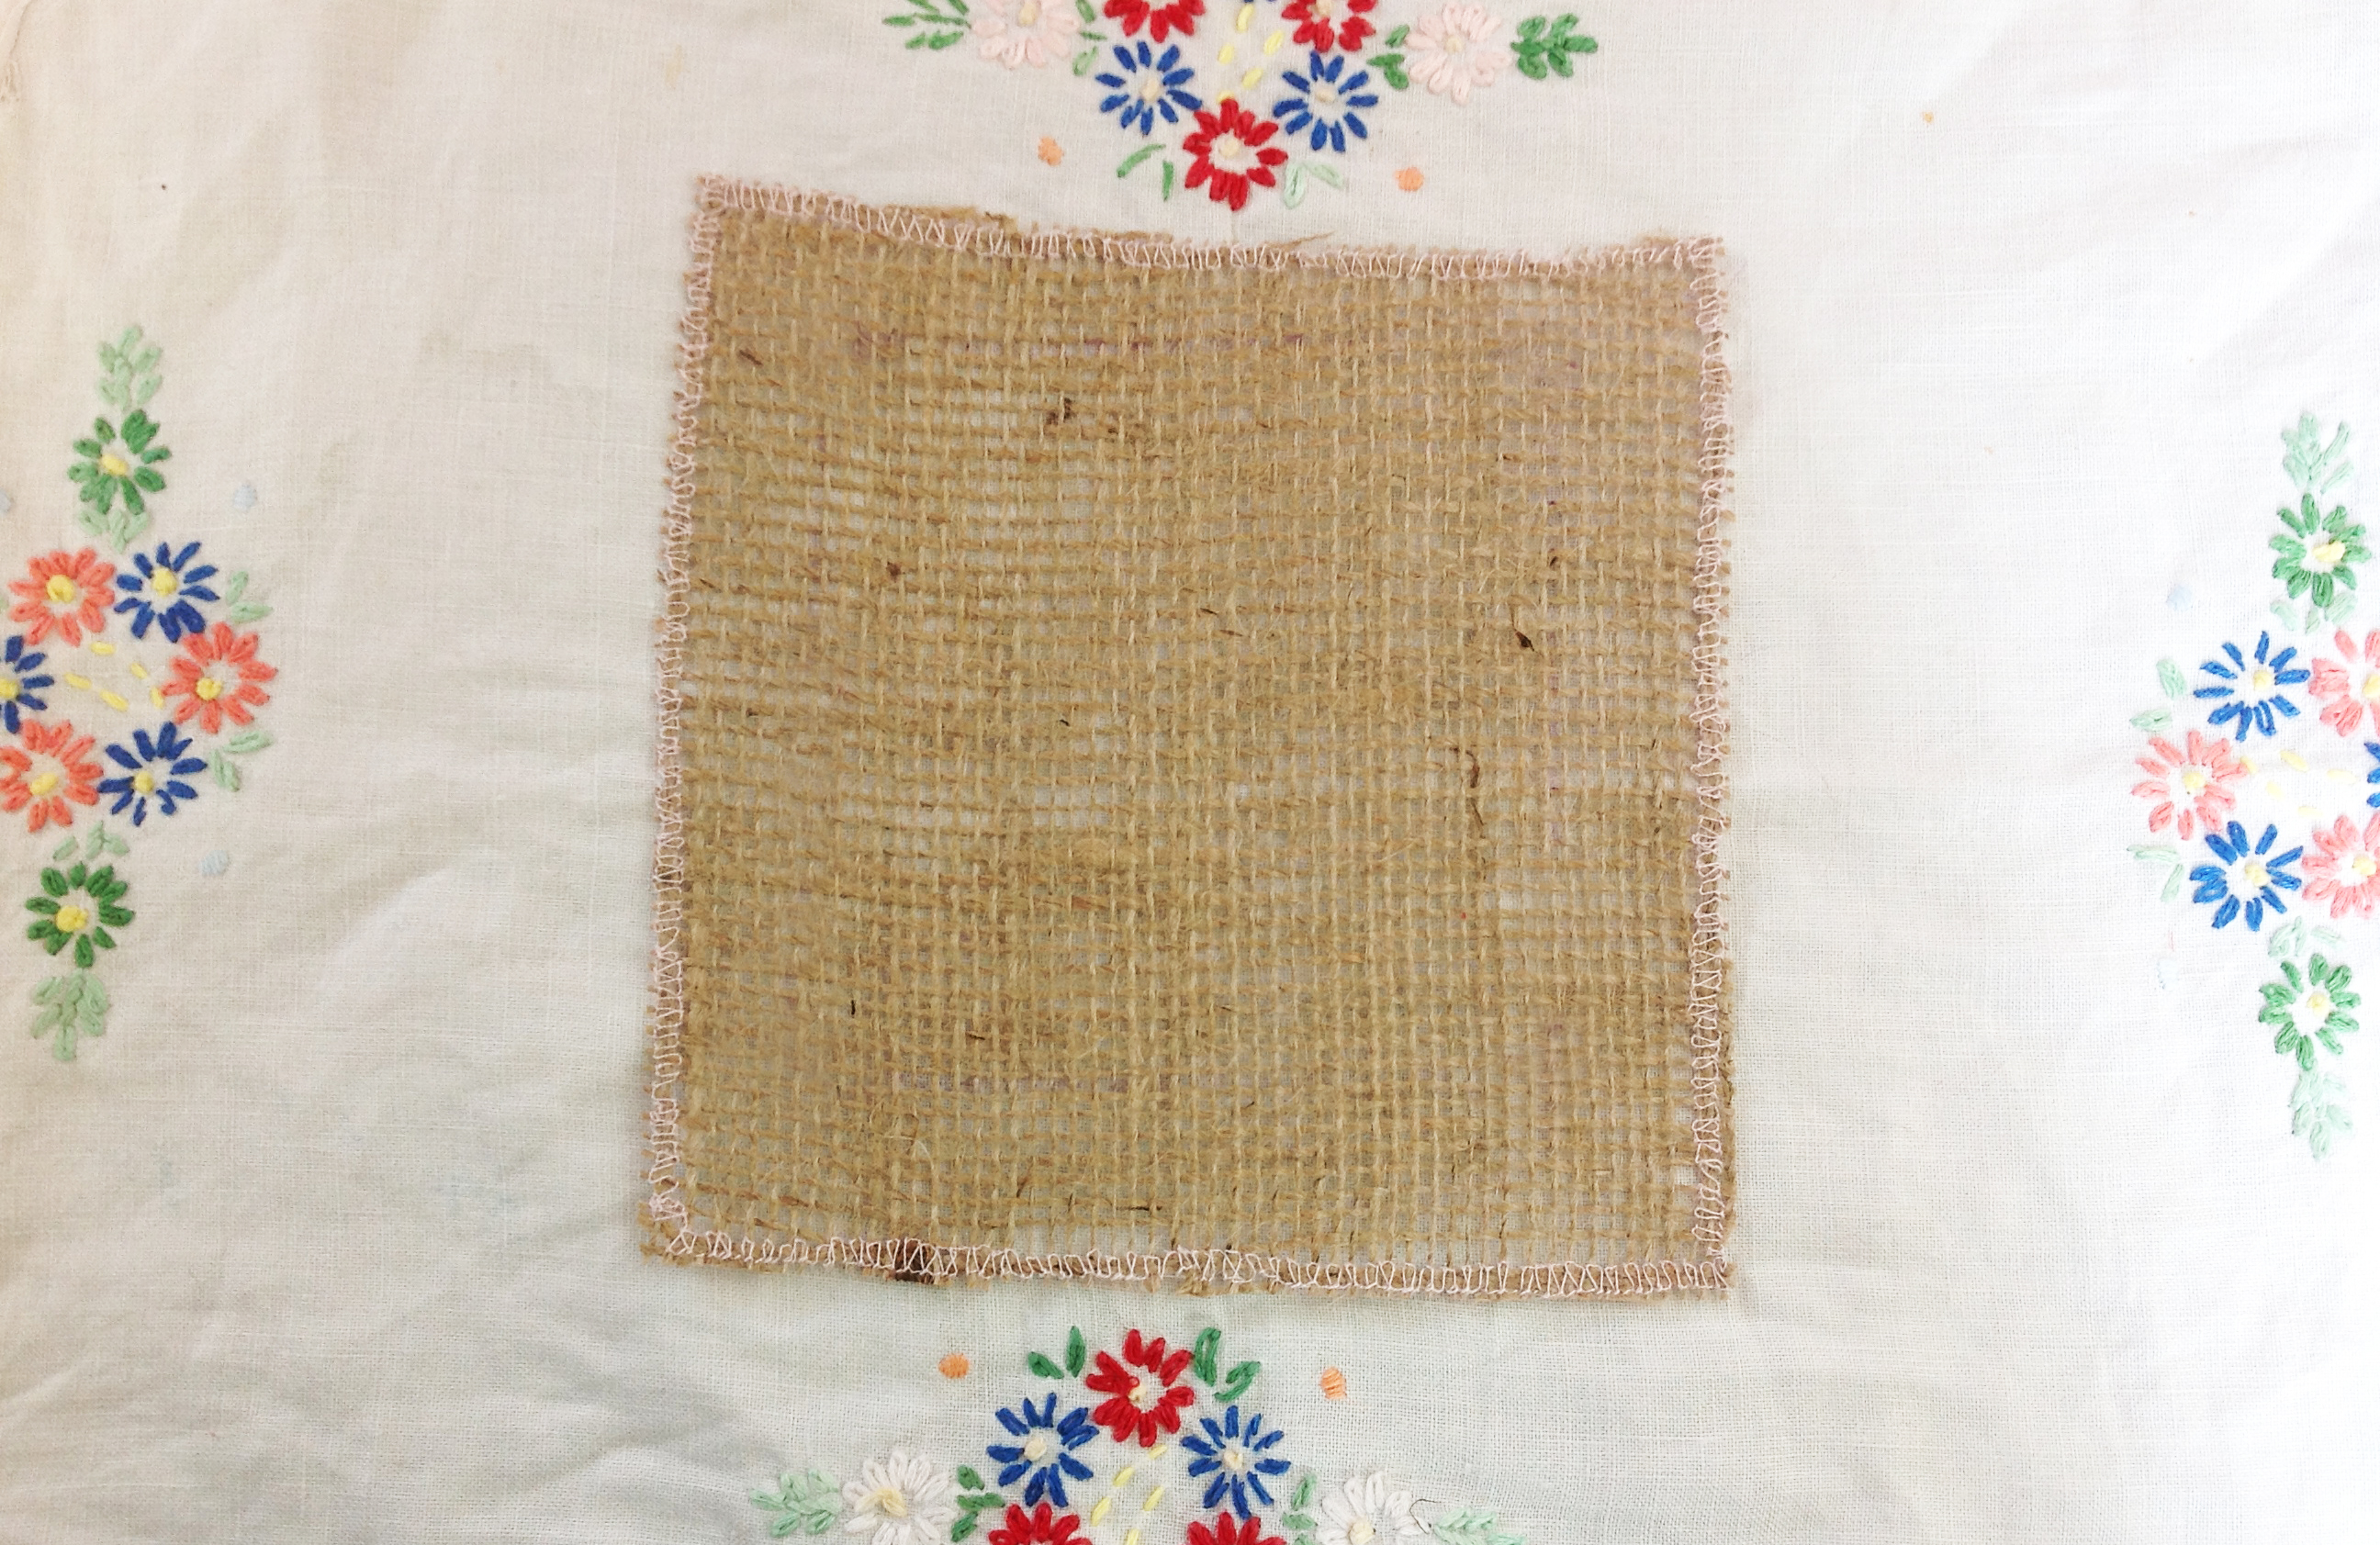 Most People Would Ociate Hessian With Potato Sacks But In Rag Rugging It Acts As A Base To Weave Material Through And Hold Firm